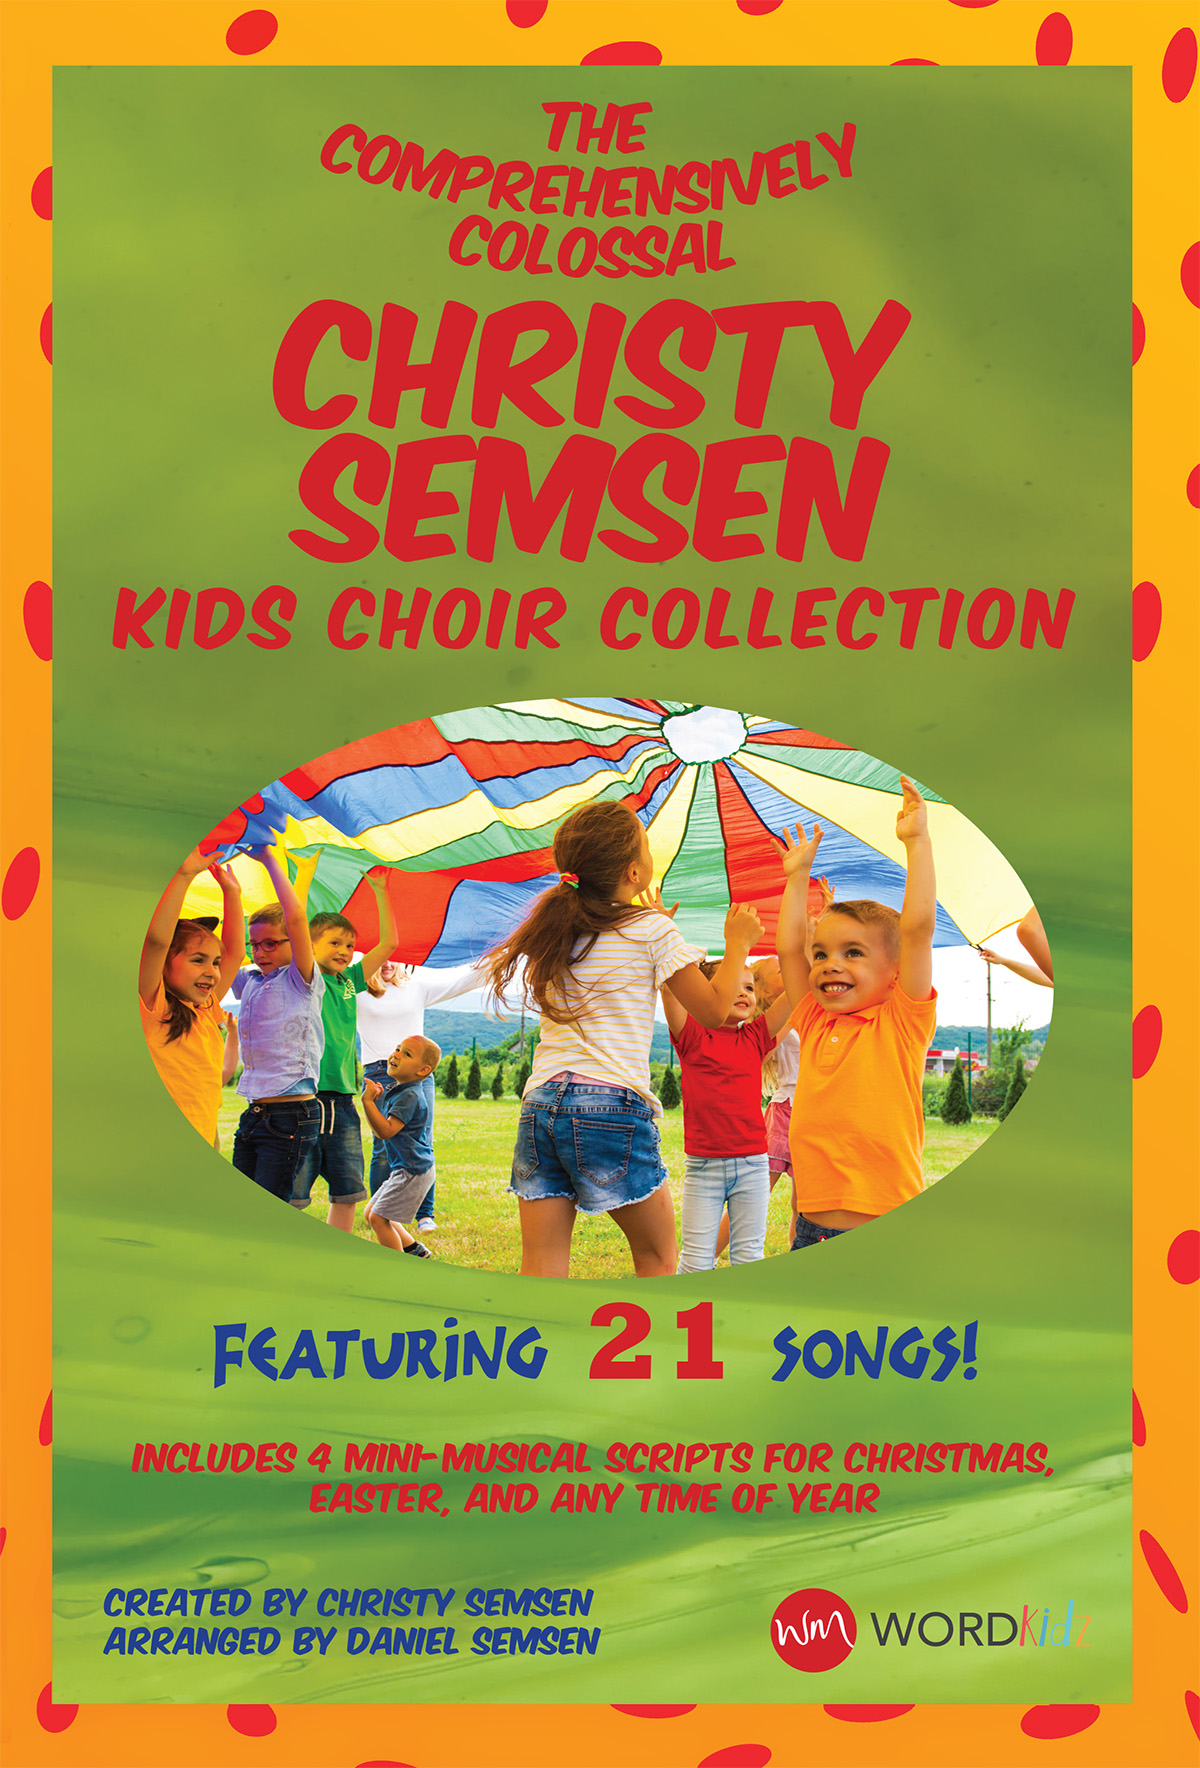 The Comprehensively Colossal Christy Semsen Kids Choir Collection